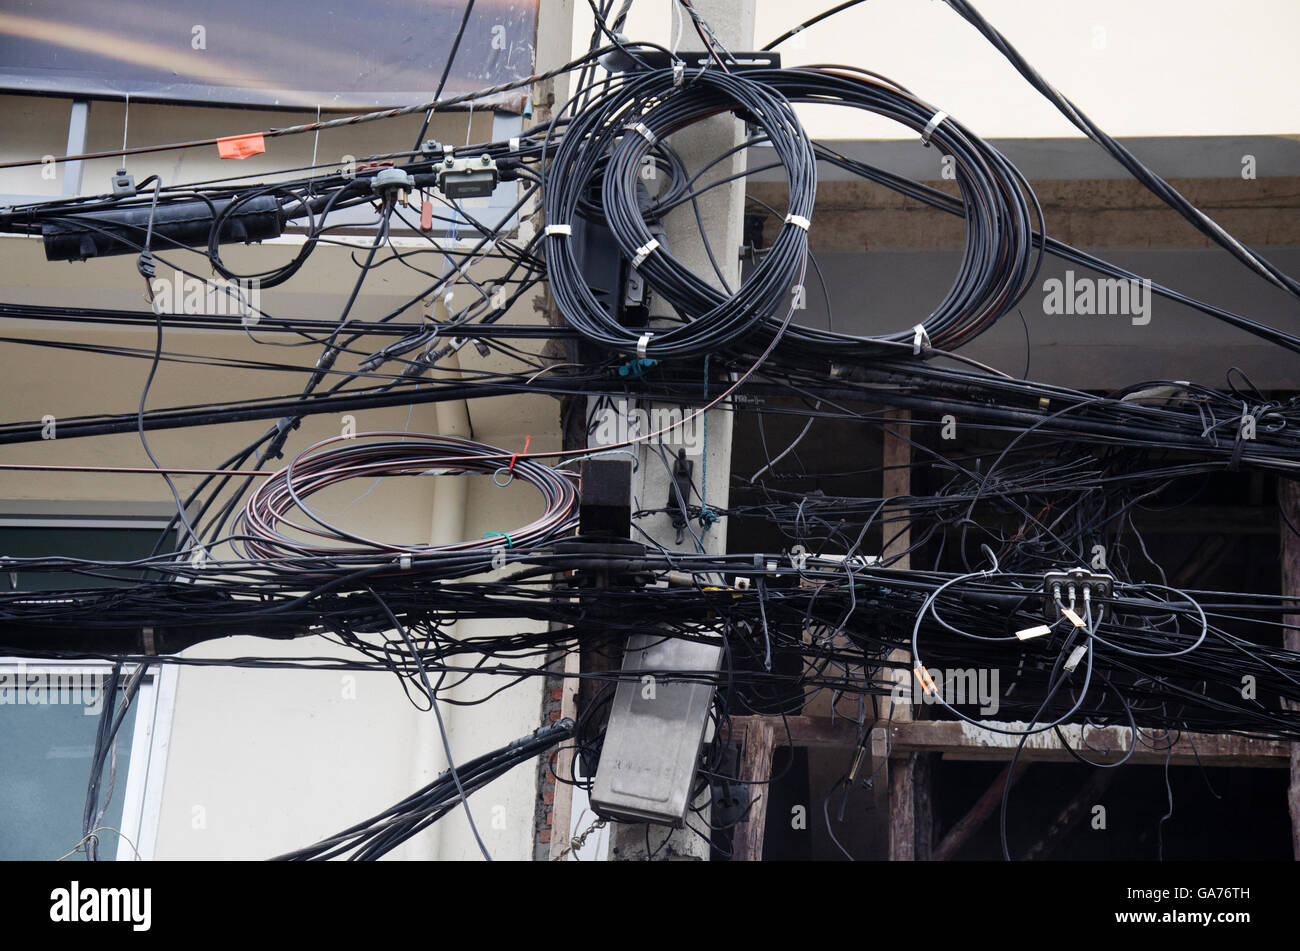 hight resolution of many wires messy with power line cables transformers and phone lines on old electricity pillar or utility pole at beside road a